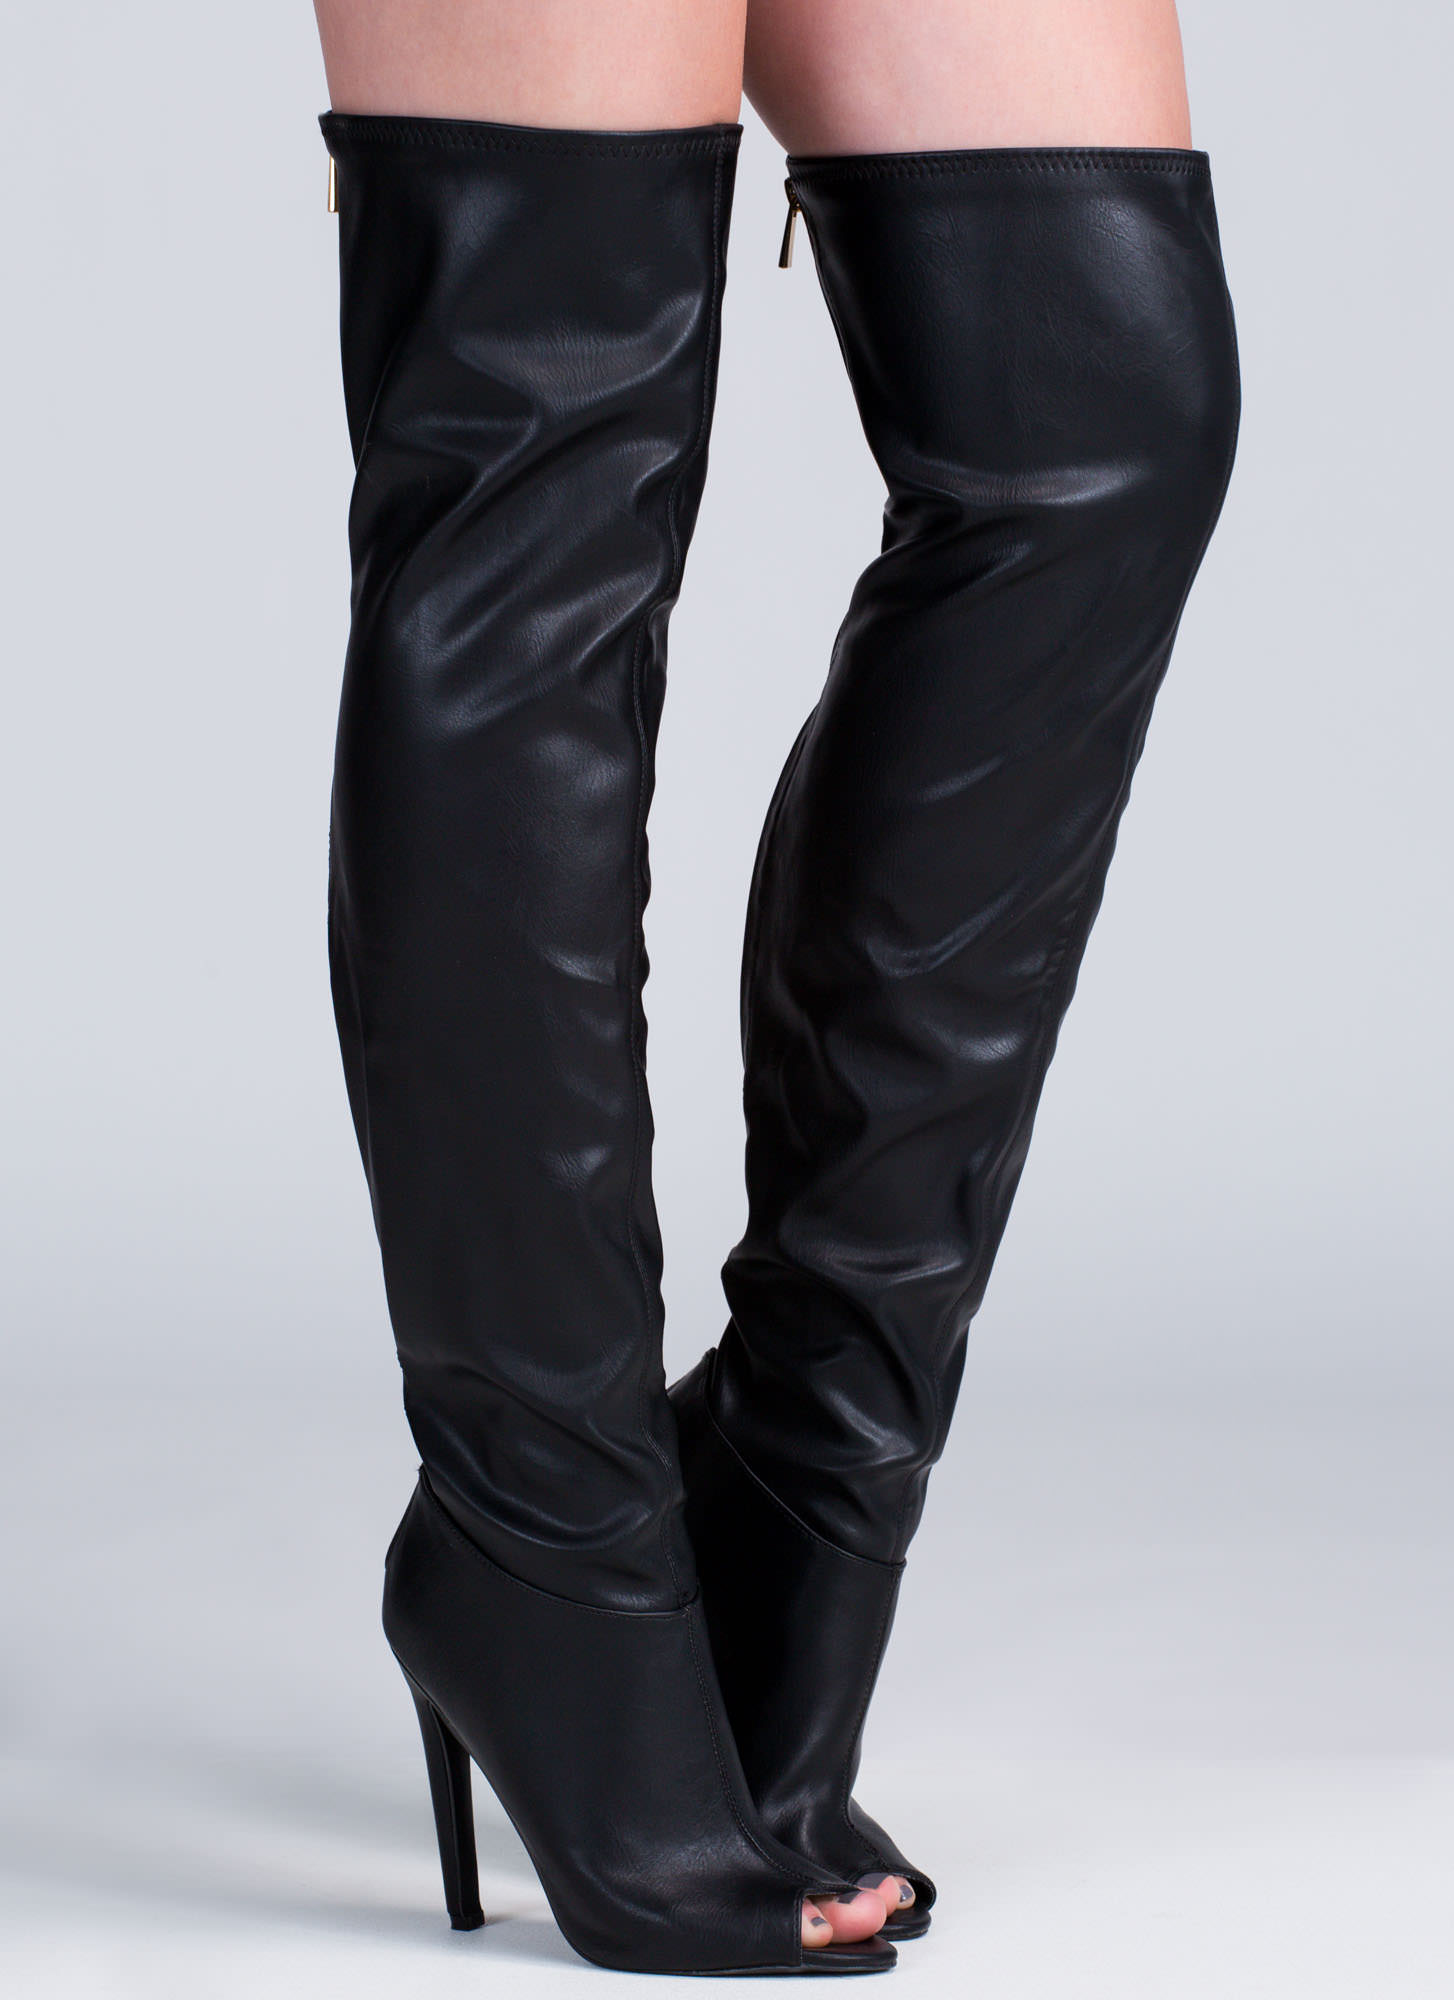 Open Toe Thigh High Boots - Cr Boot